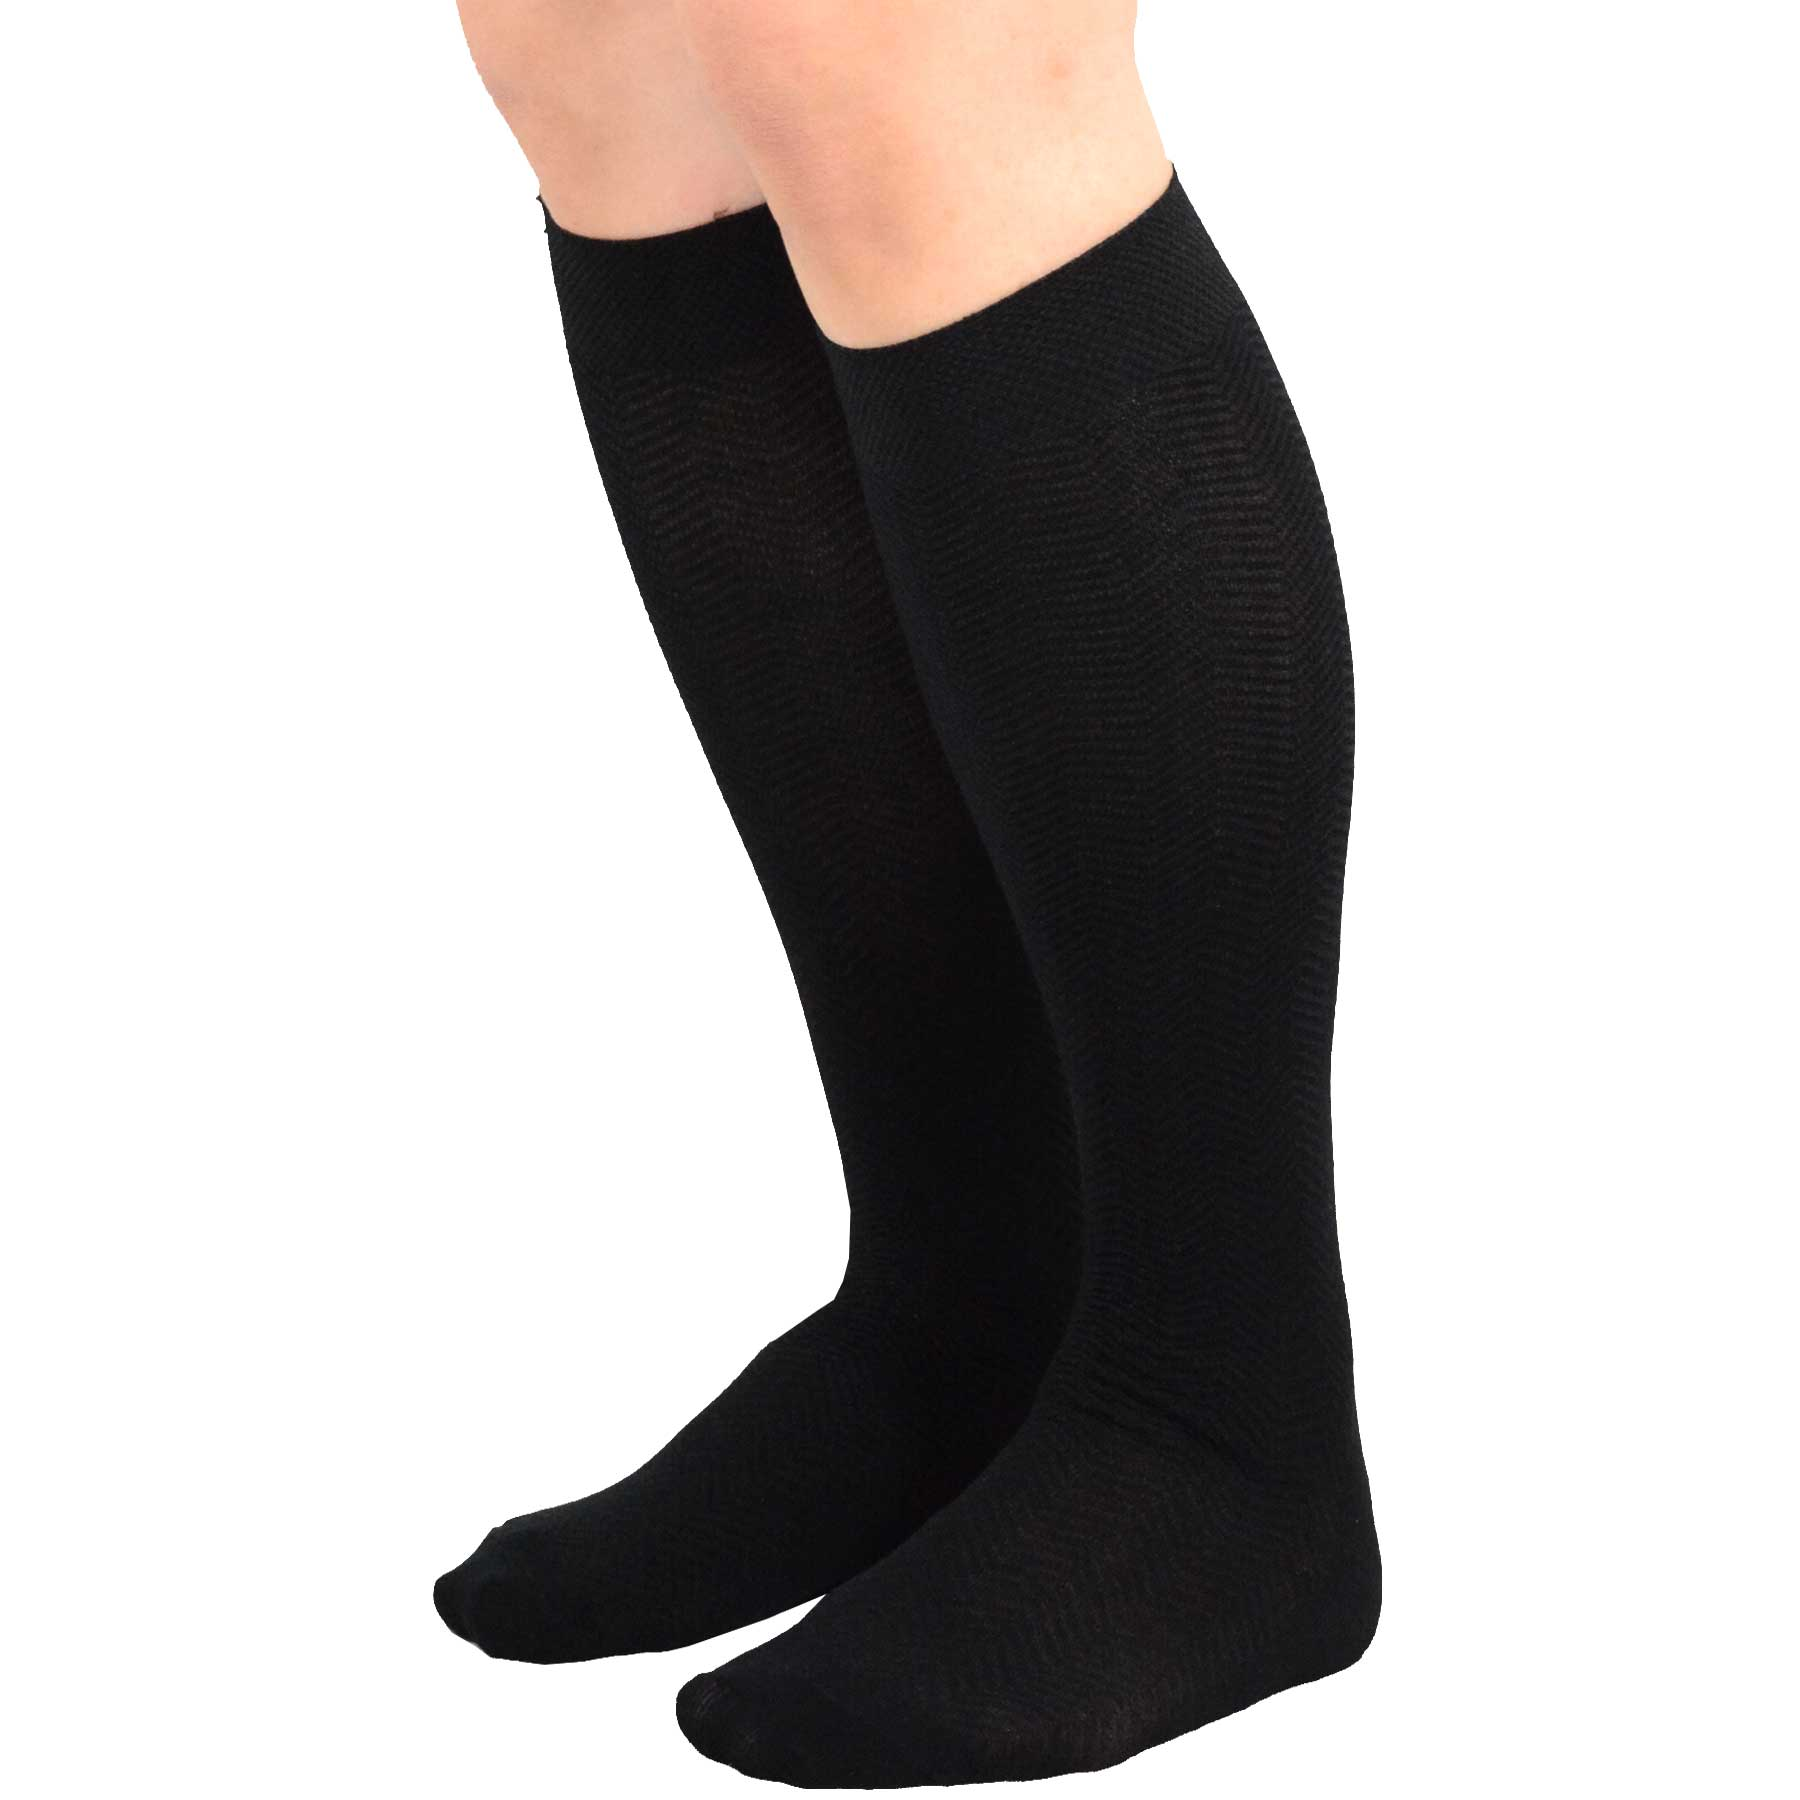 Over the Calf DRESS Socks 6pk - Assorted